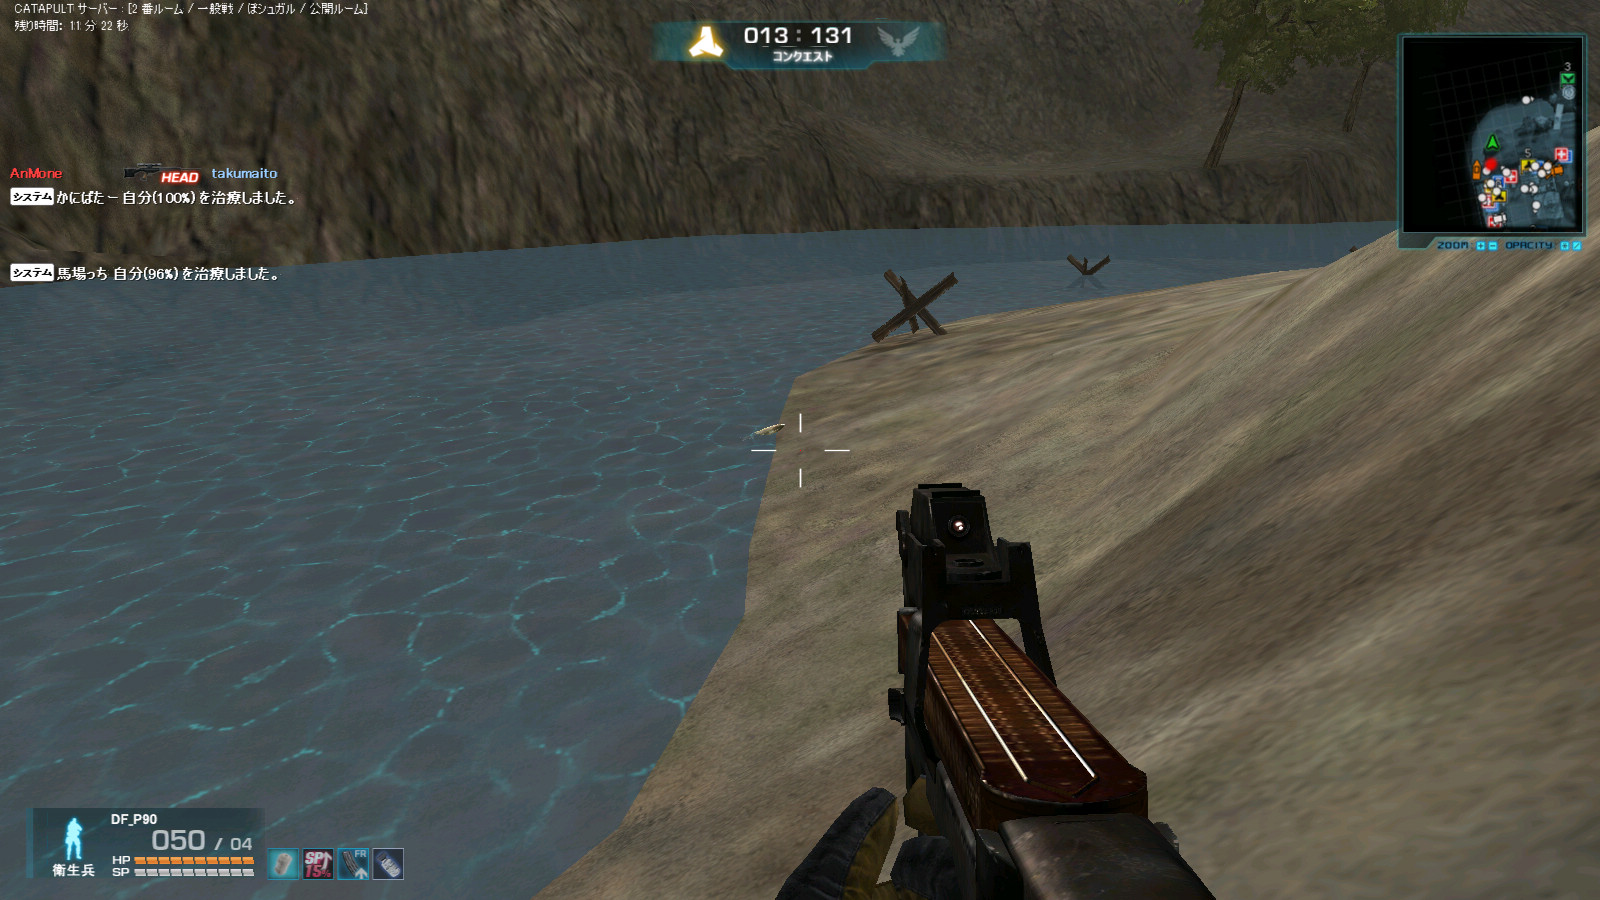 screenshot_087.jpg